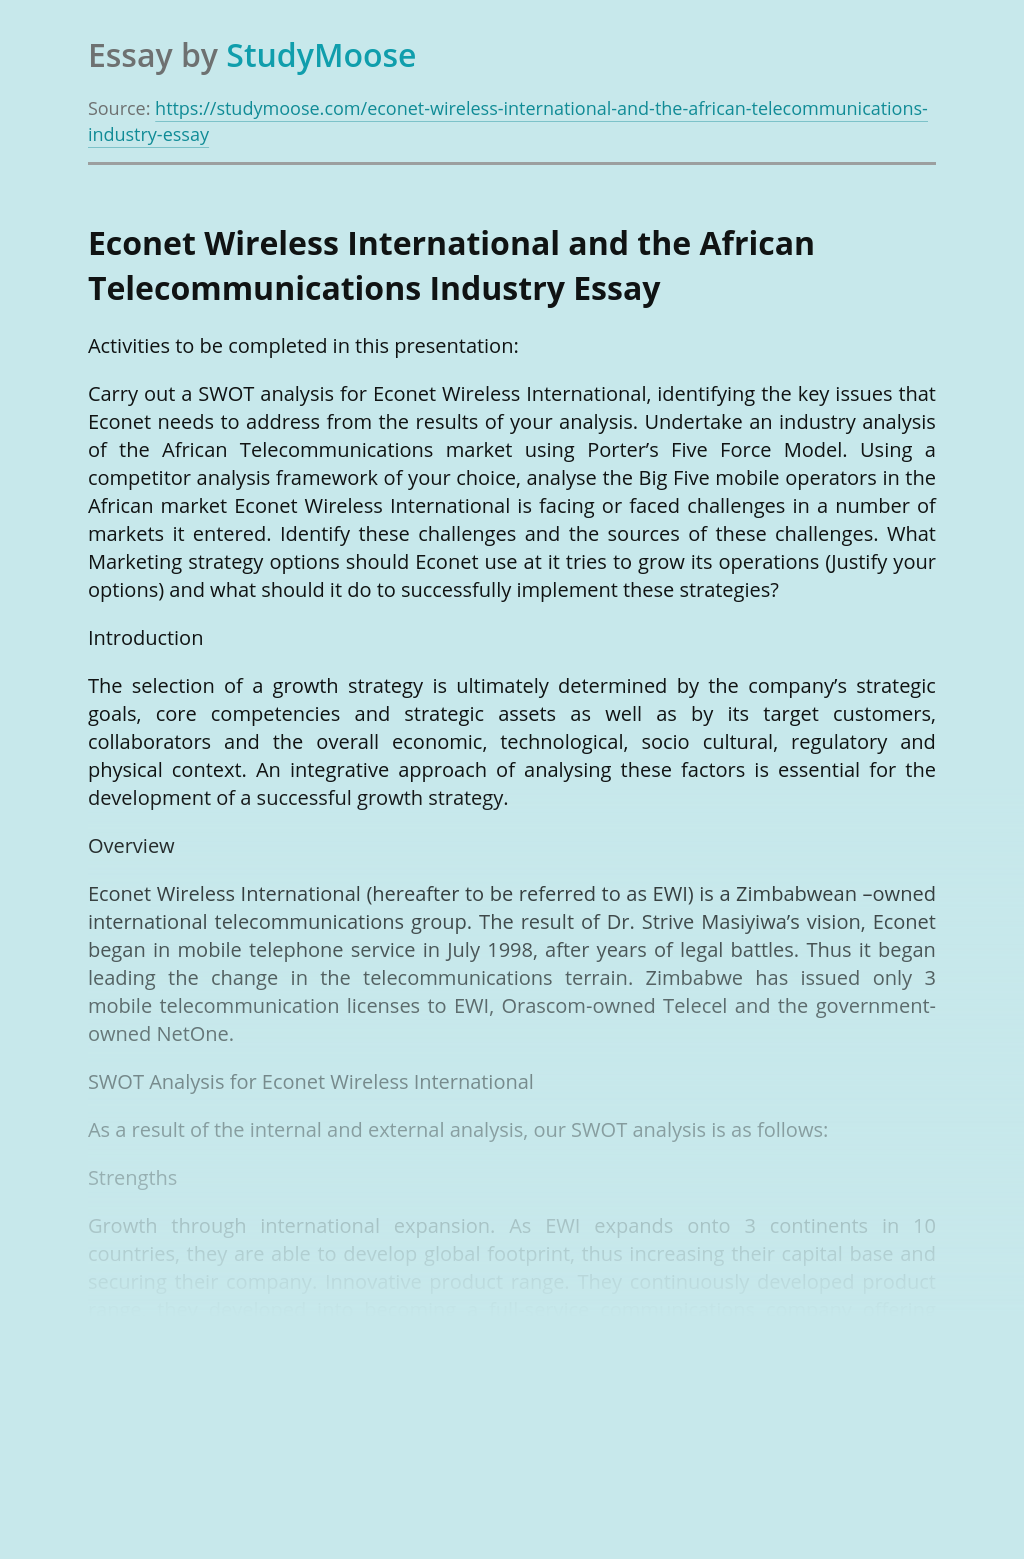 Econet Wireless International and the African Telecommunications Industry